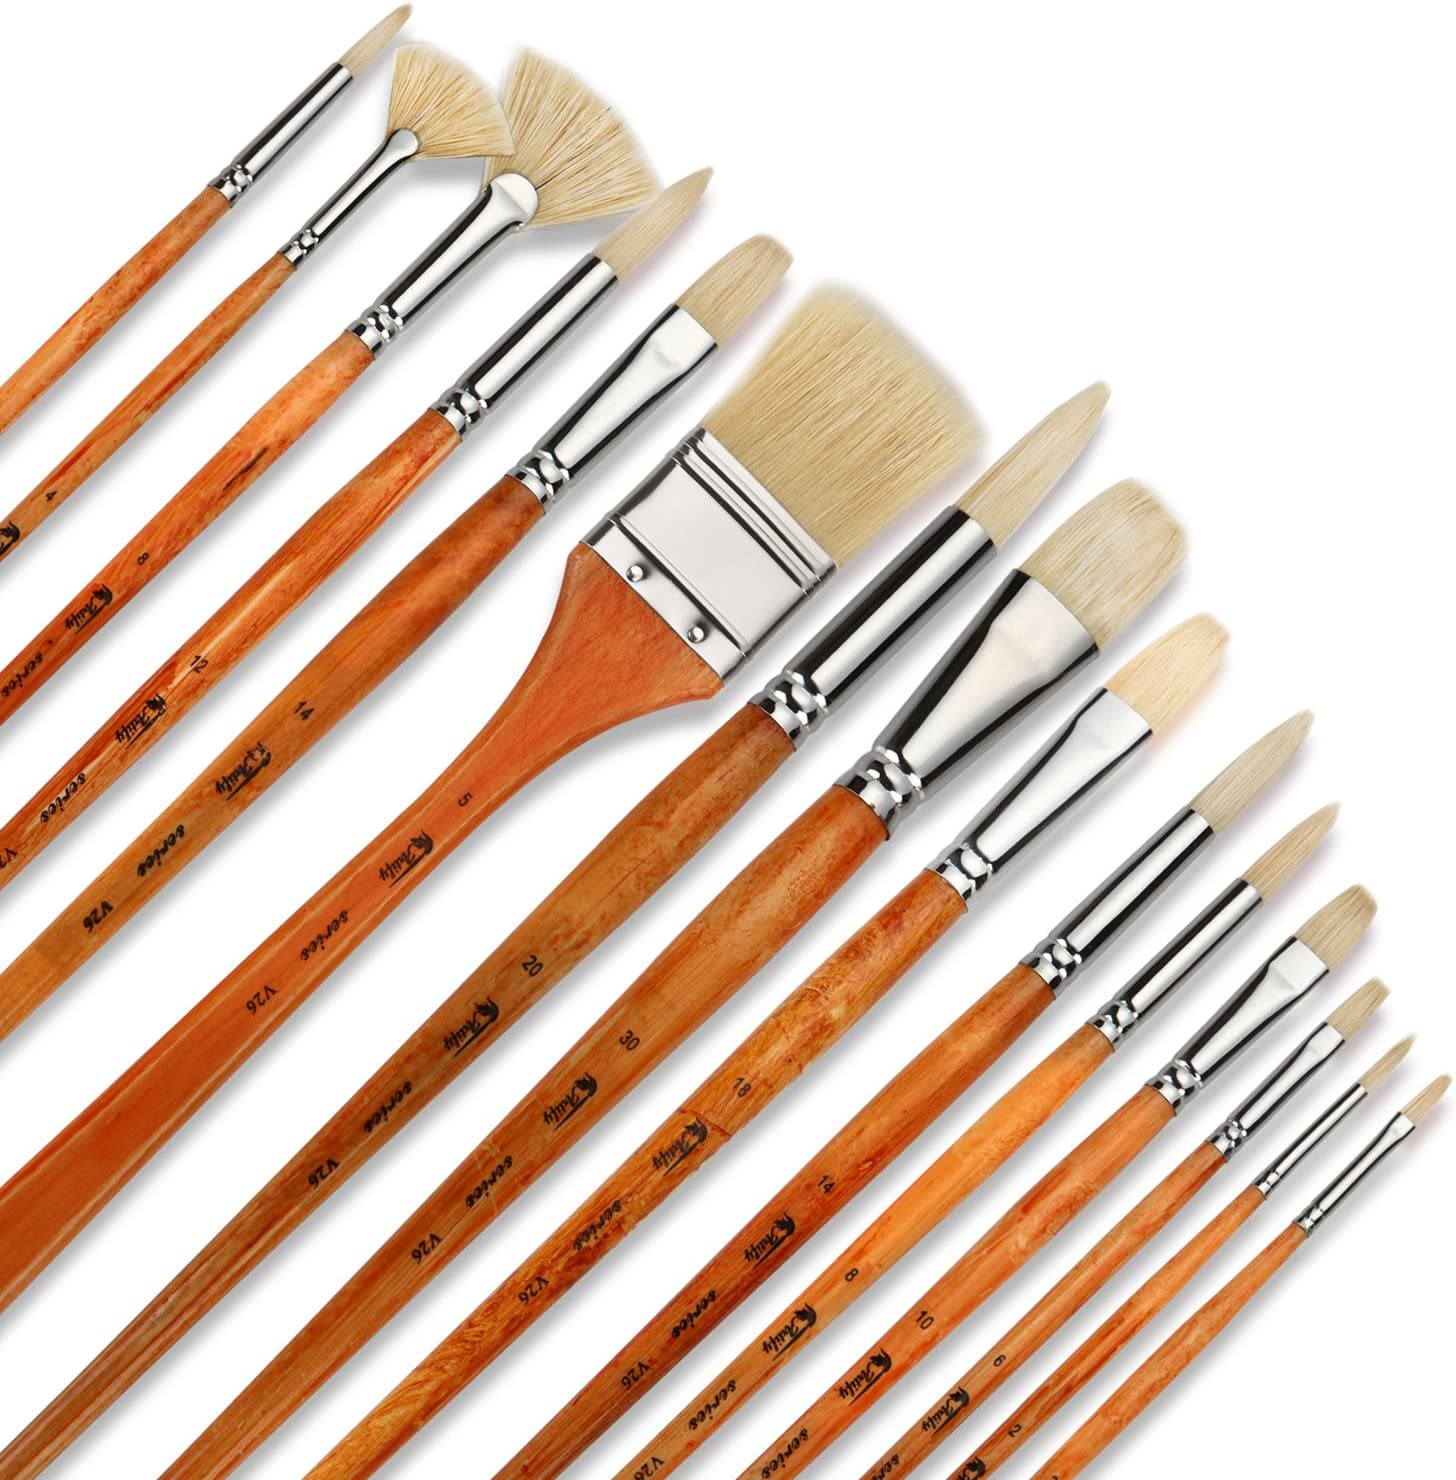 Artify 15 pcs Professional Paint Brush Set Perfect for Oil Painting with a Free Carrying Box